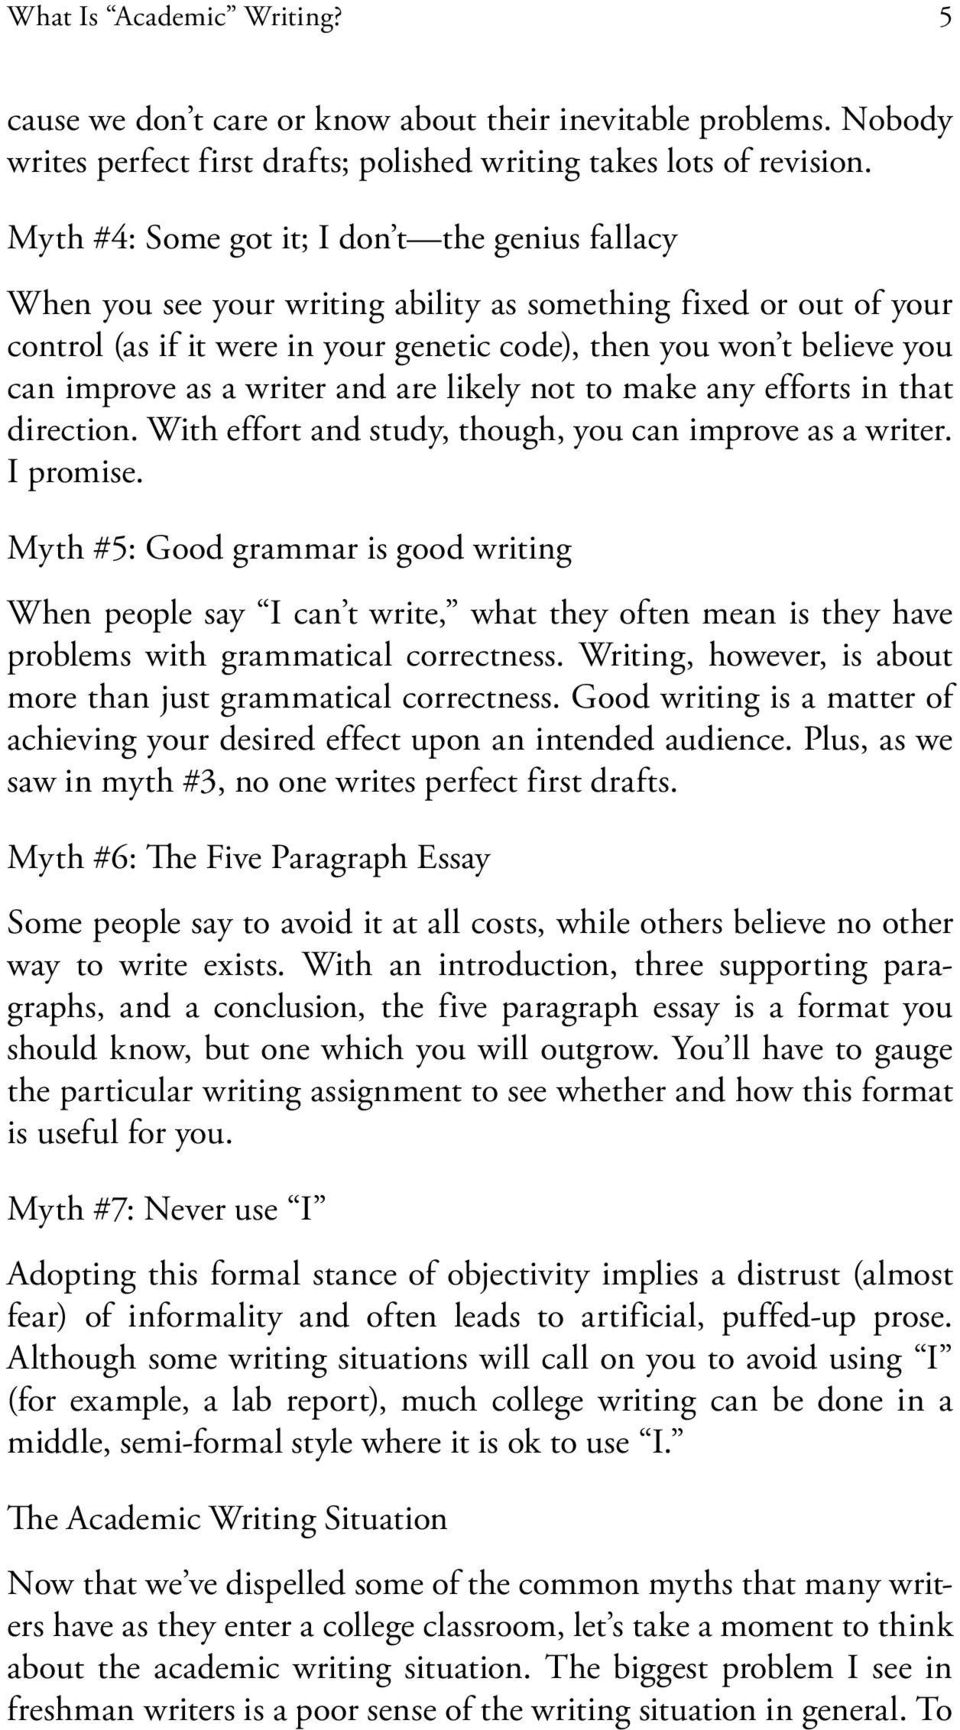 improve as a writer and are likely not to make any efforts in that direction. With effort and study, though, you can improve as a writer. I promise.